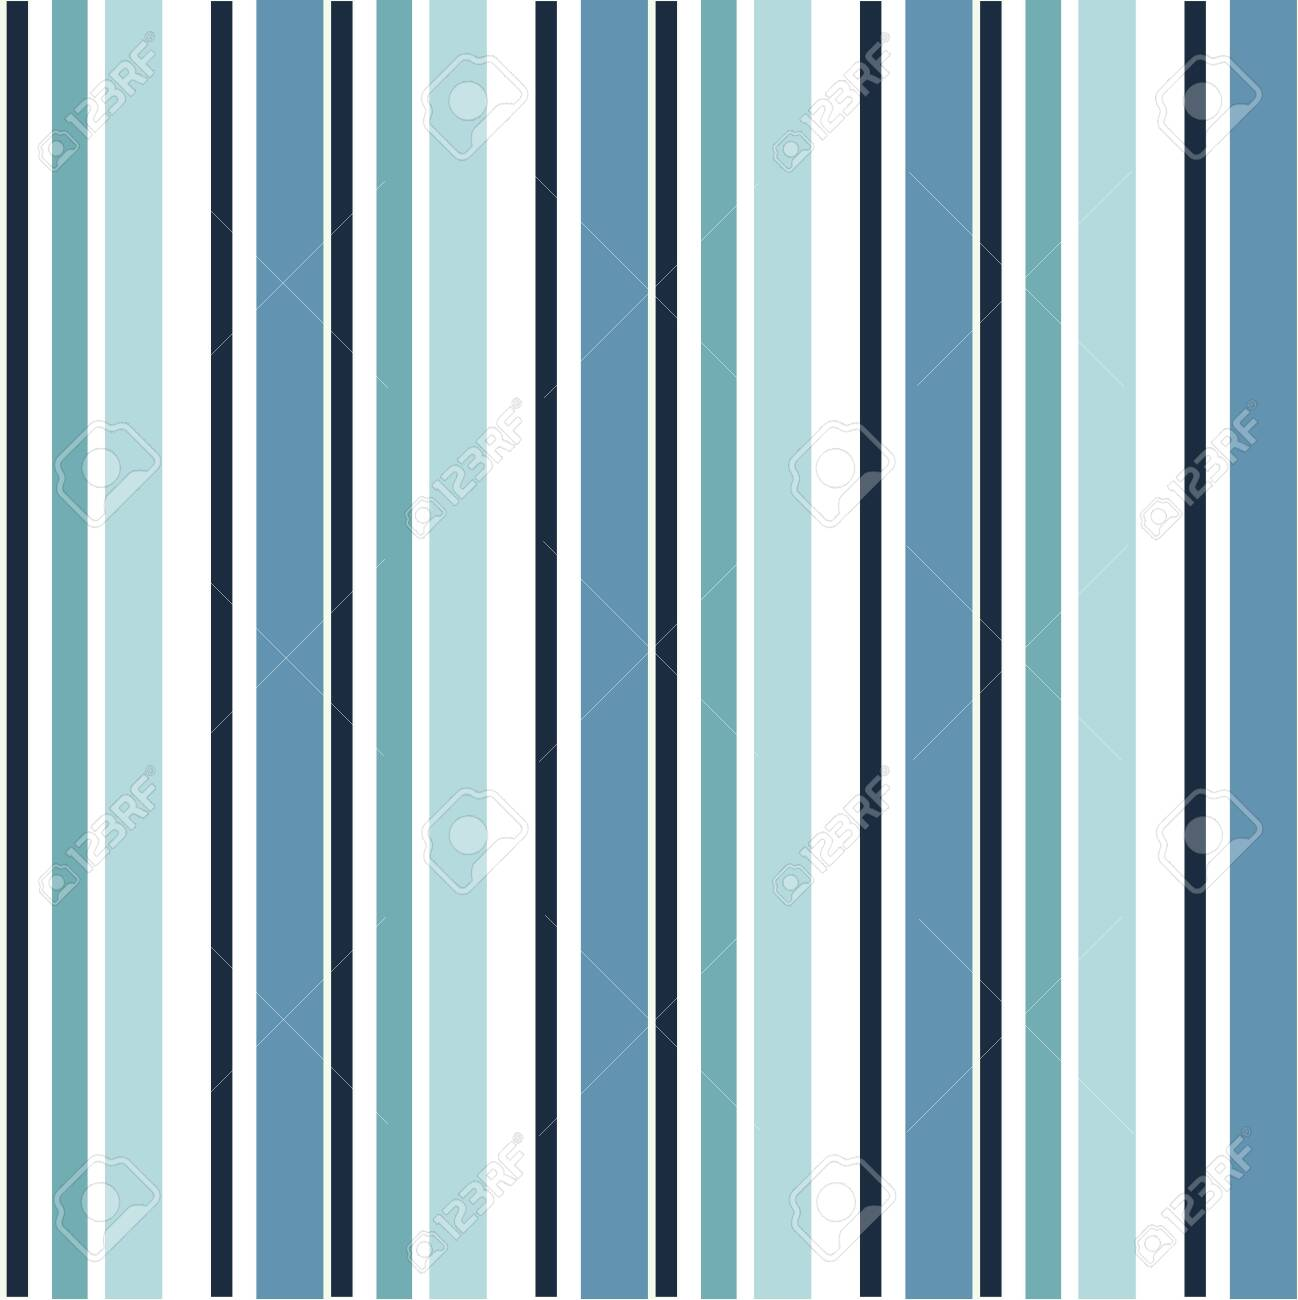 Seamless bright colored pattern with straight, parallel, vertical lines. Vector illustration. Abstract background. Design for fabric, card. - 144647190